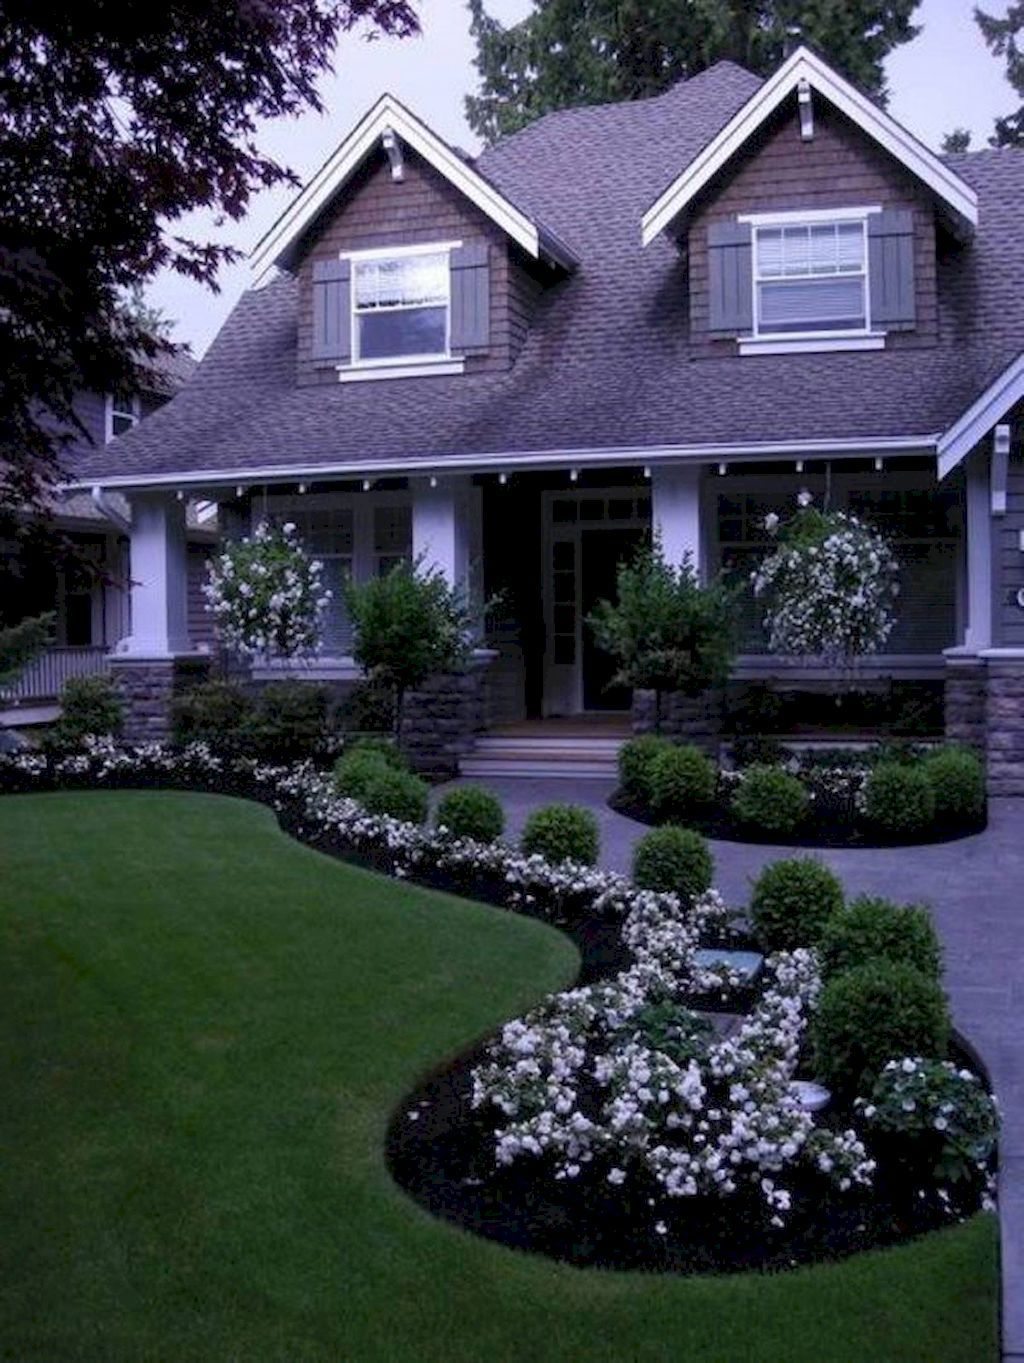 40 beautiful front yard landscaping ideas yard for Landscaping your front yard